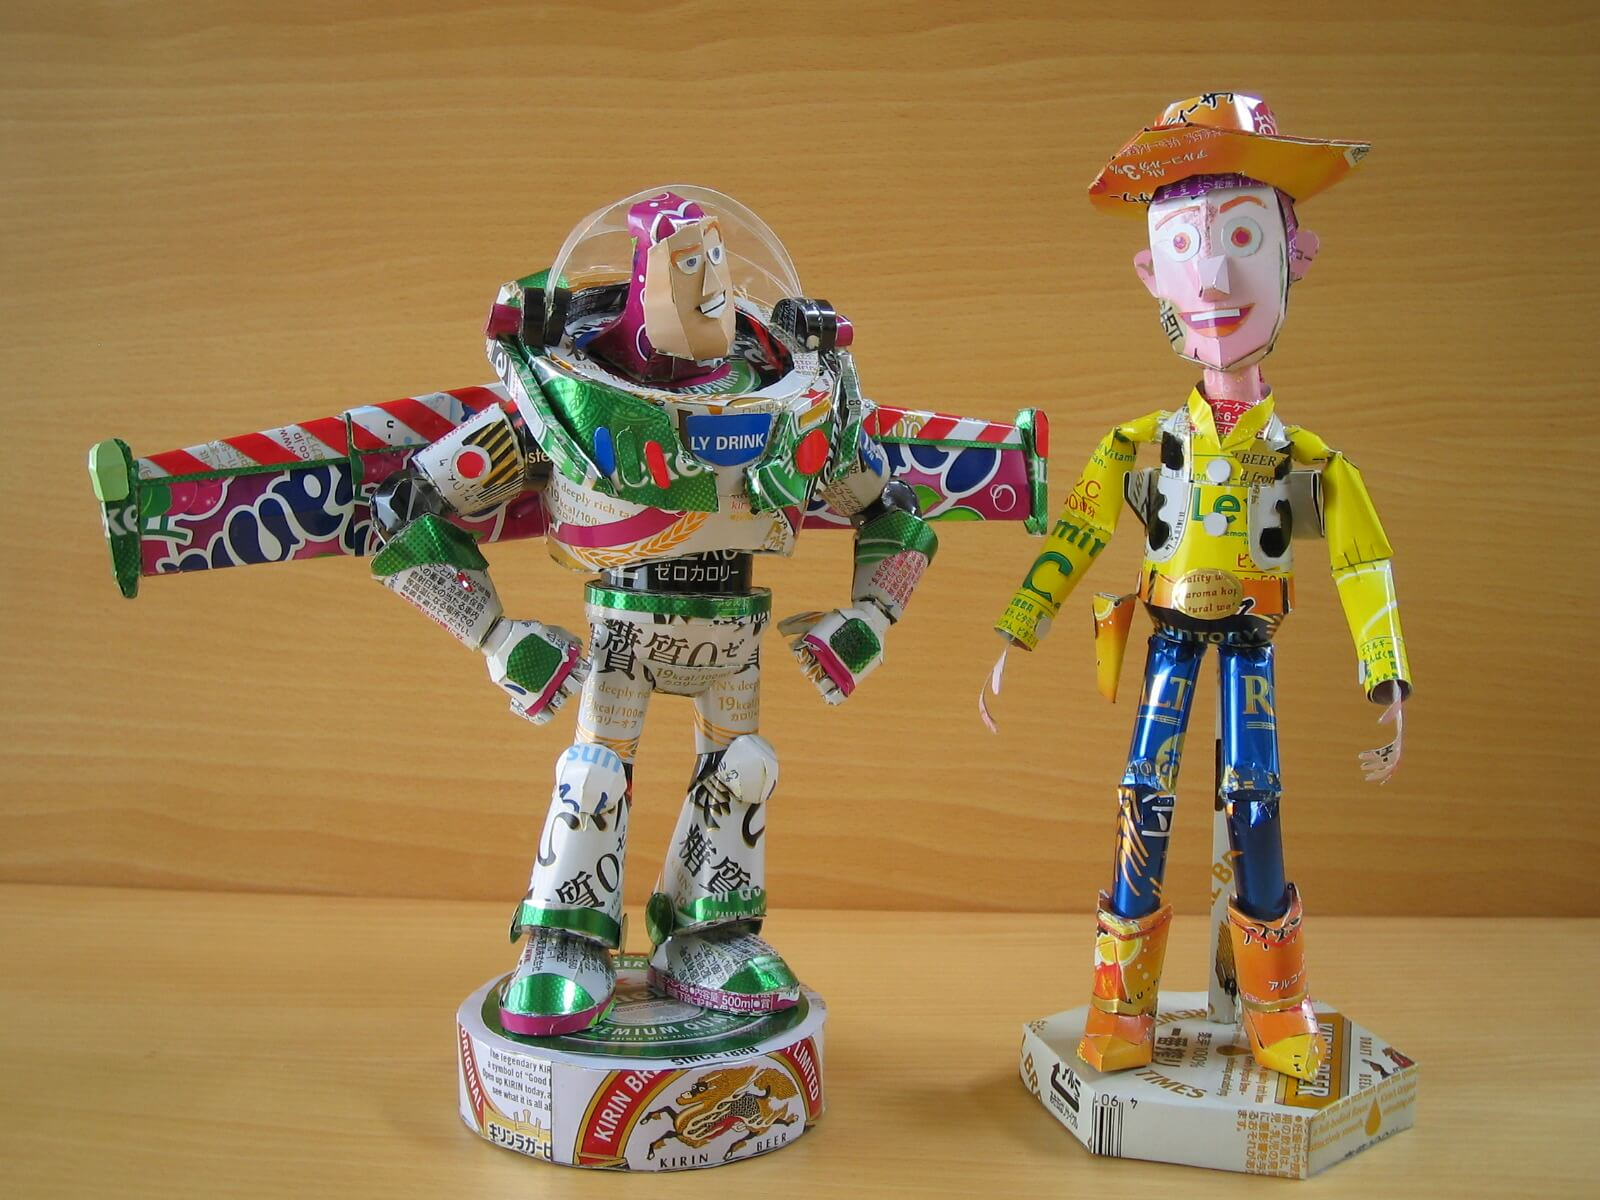 soda cans sculptures 3 (1)